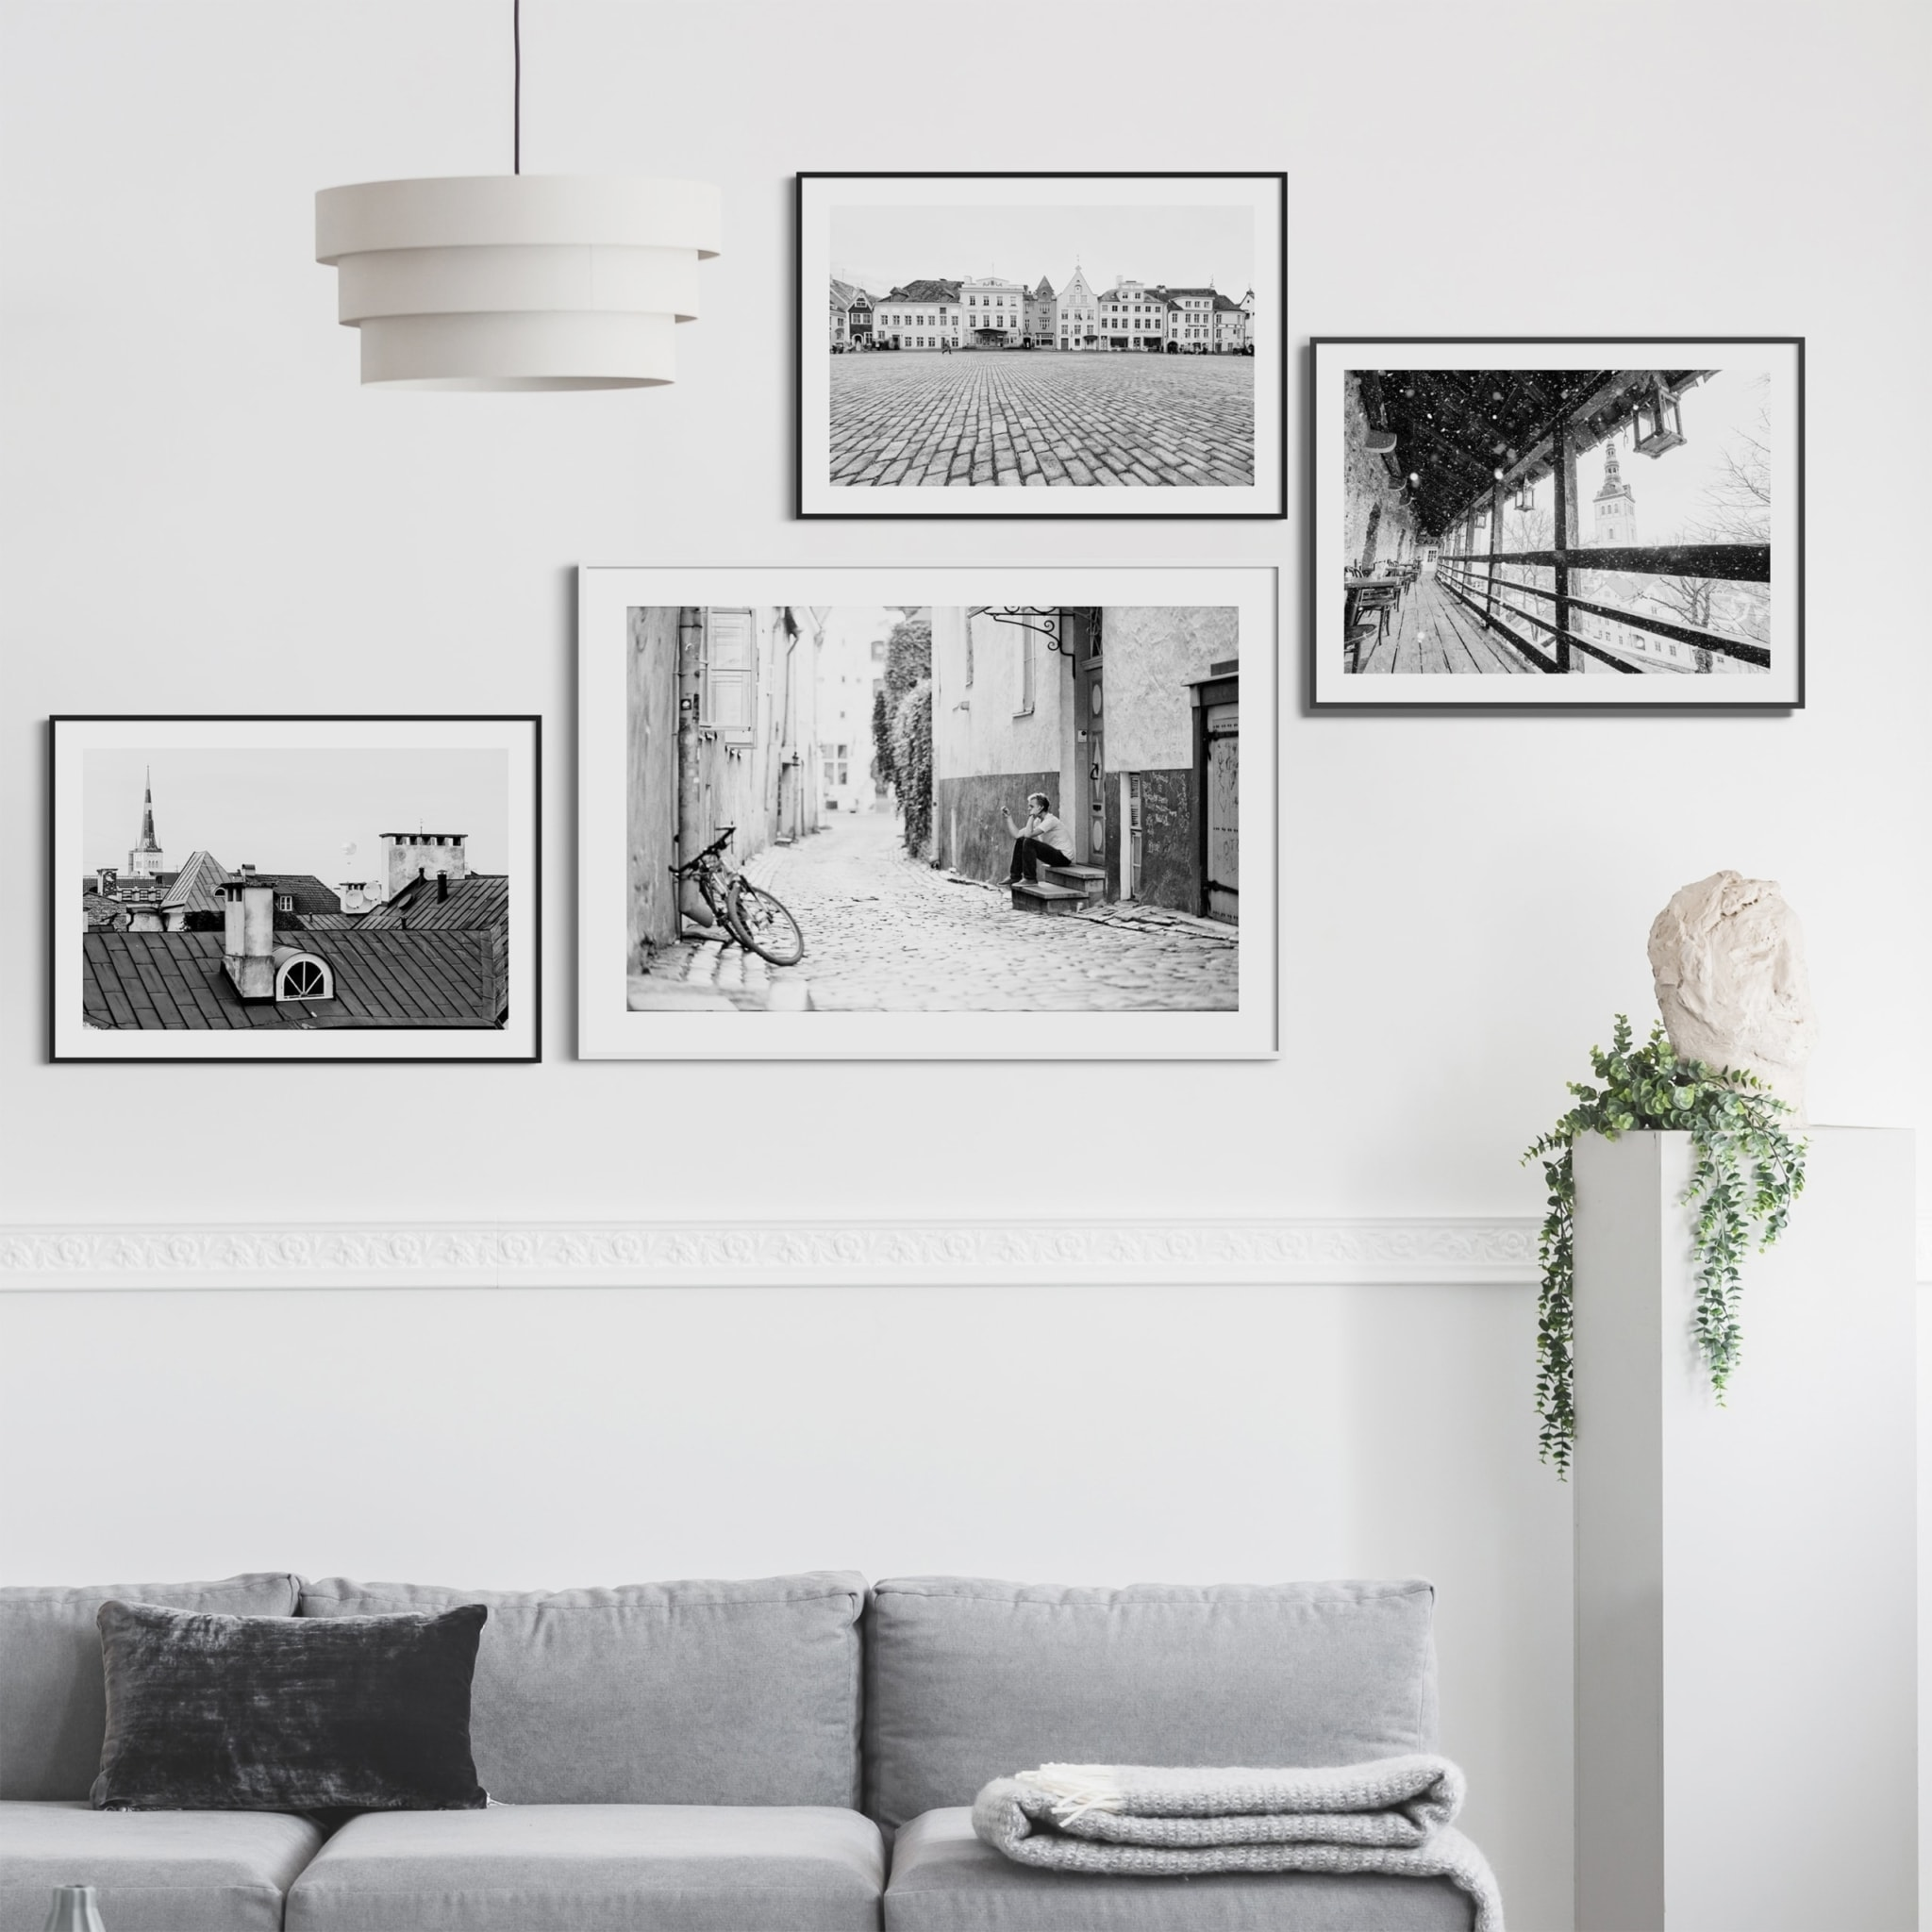 Old Town Street Photograph in white frame on the wall